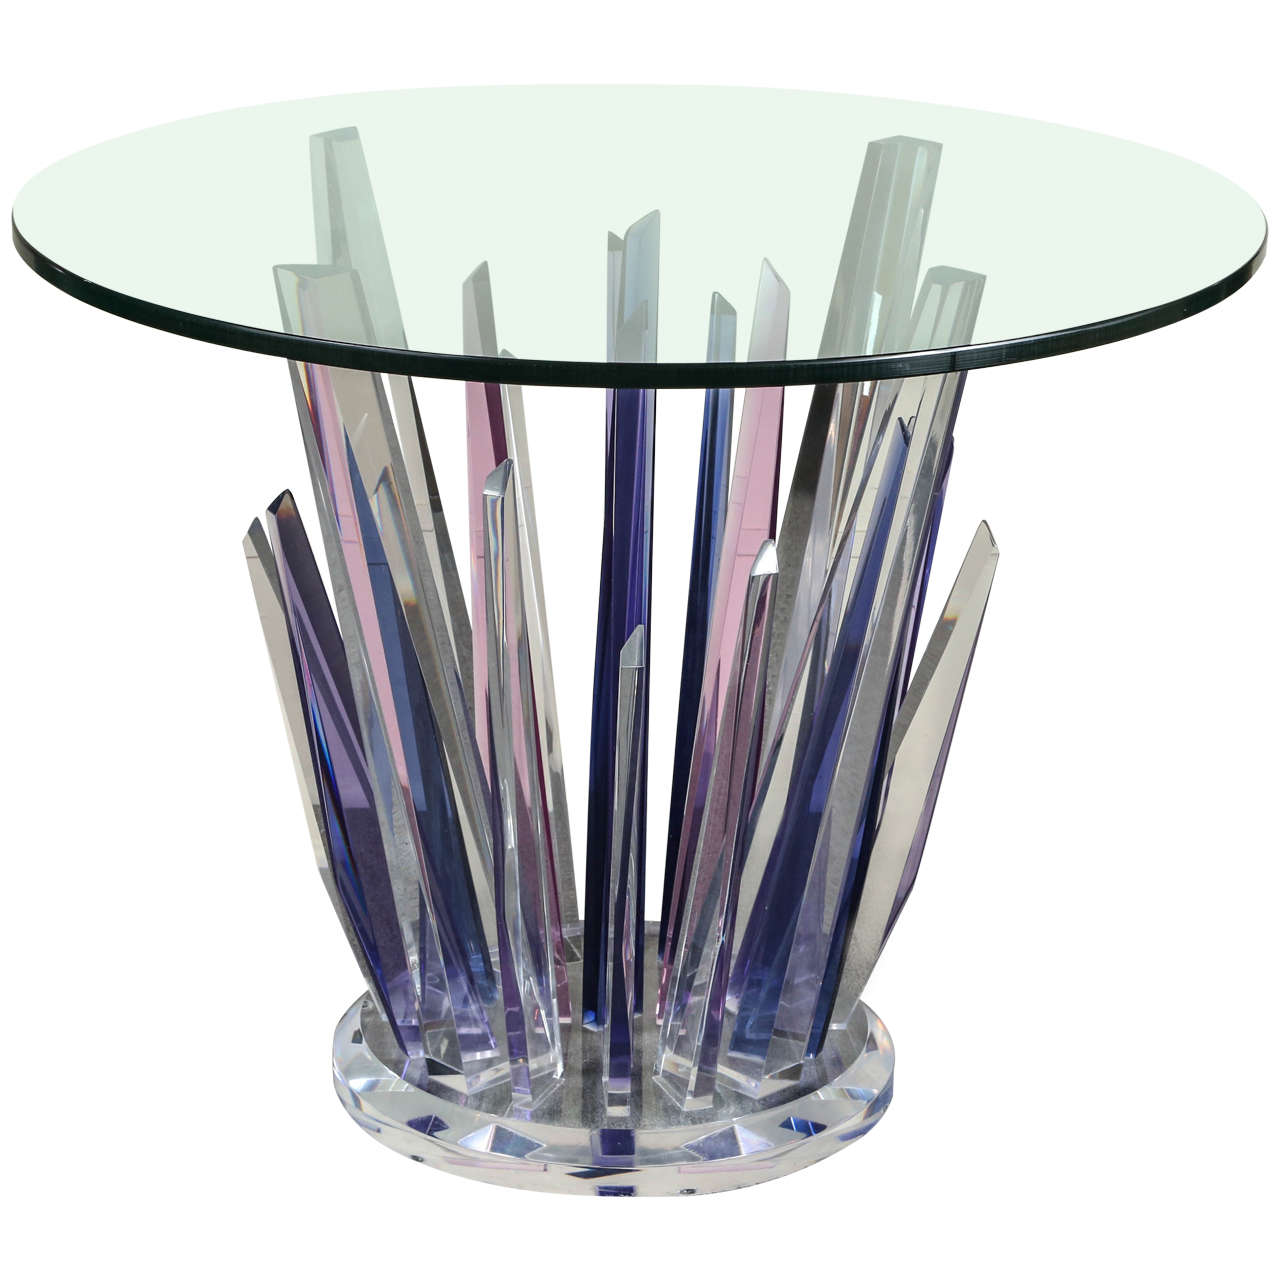 Stunning Stalagmite Lucite Table For Sale